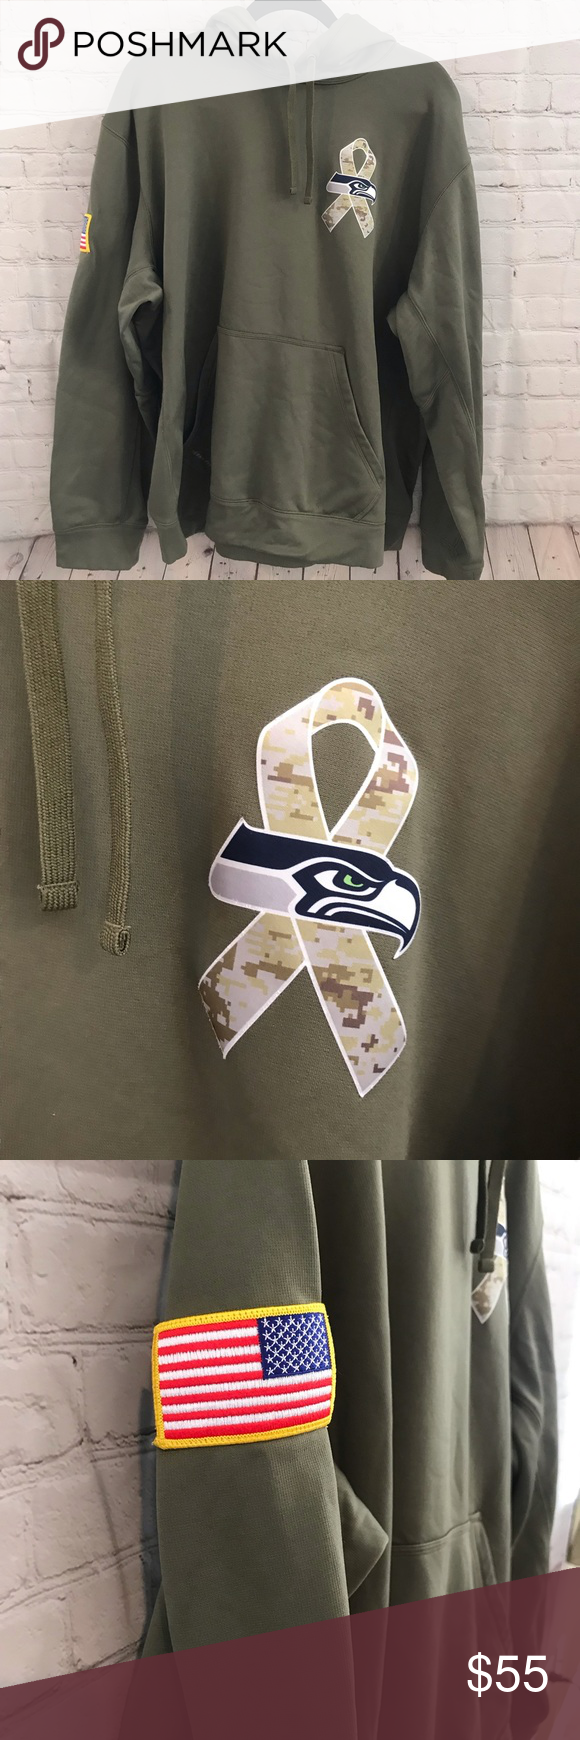 Seattle Seahawks Salute to Service Hoodie, XXL Seattle Seahawks Salute to Service thermal fit Hoodie, XXL. Color is olive and made fore 2014 NFL Salute to Service.  Light pulling on inside fabric. Nike Shirts Sweatshirts & Hoodies #salutetoservice Seattle Seahawks Salute to Service Hoodie, XXL Seattle Seahawks Salute to Service thermal fit Hoodie, XXL. Color is olive and made fore 2014 NFL Salute to Service.  Light pulling on inside fabric. Nike Shirts Sweatshirts & Hoodies #salutetoservice Seat #salutetoservice